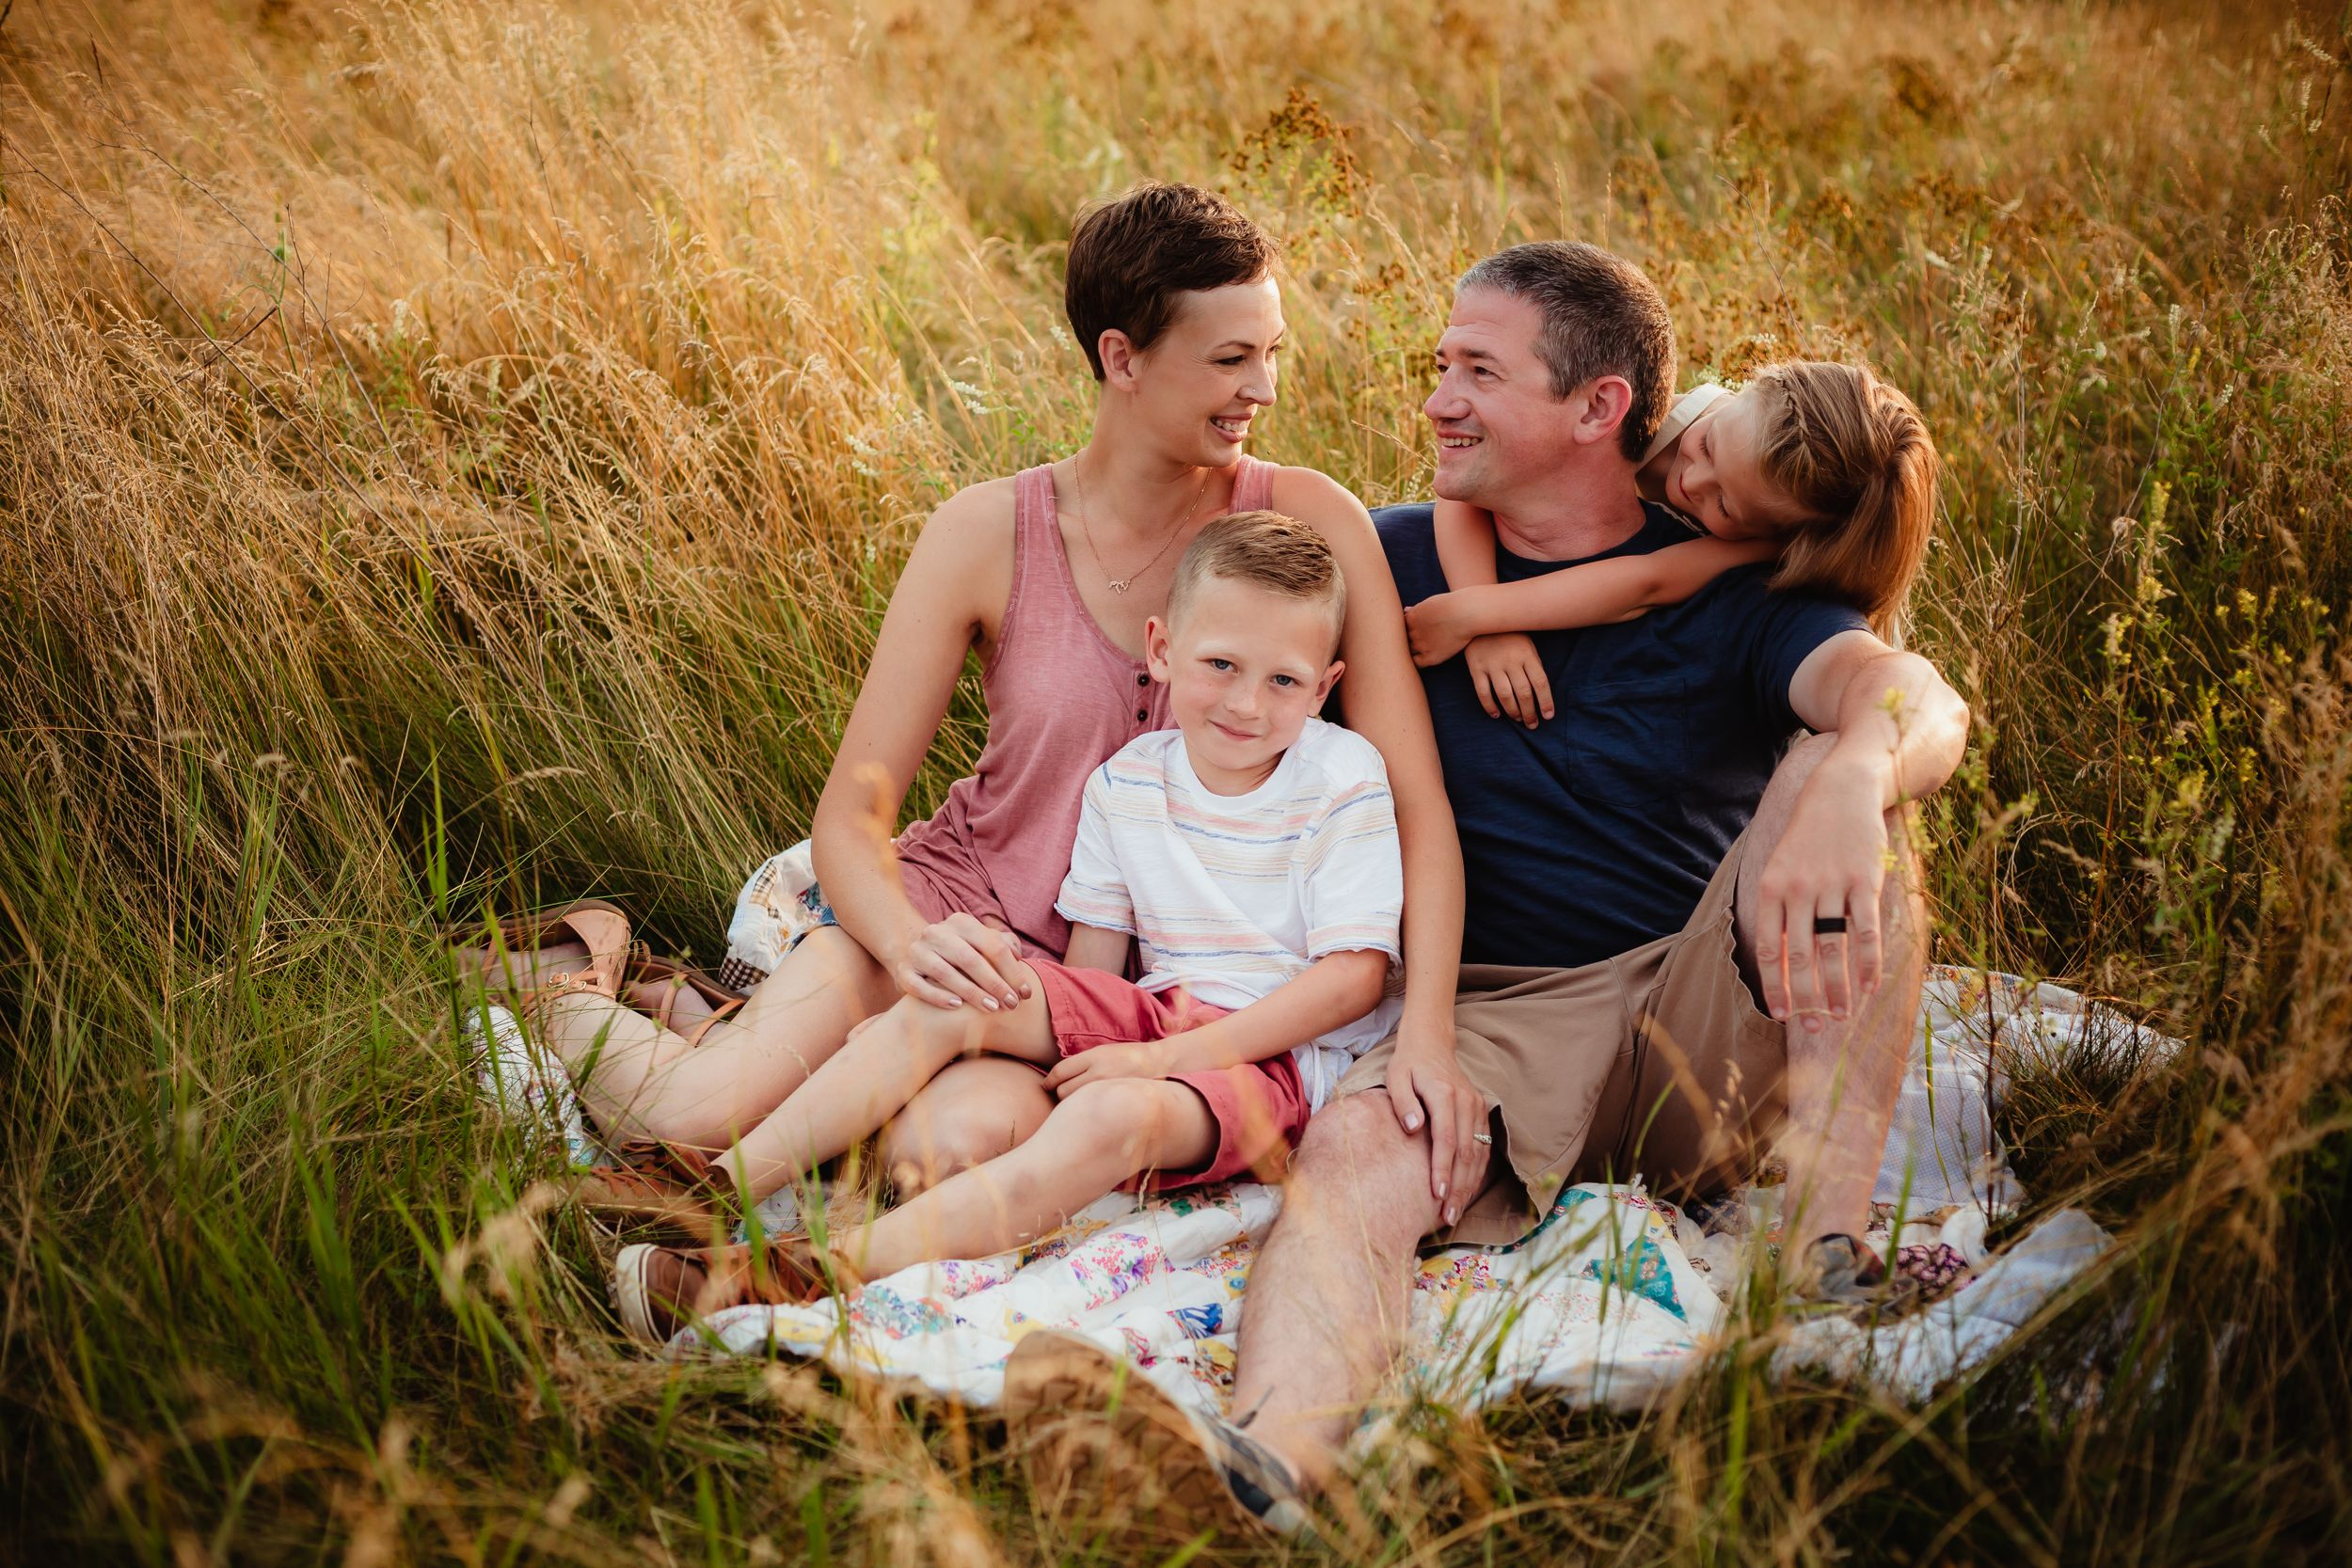 A mom, dad, brother, and sister sitting in a gold and green field. They are embracing and smiling.